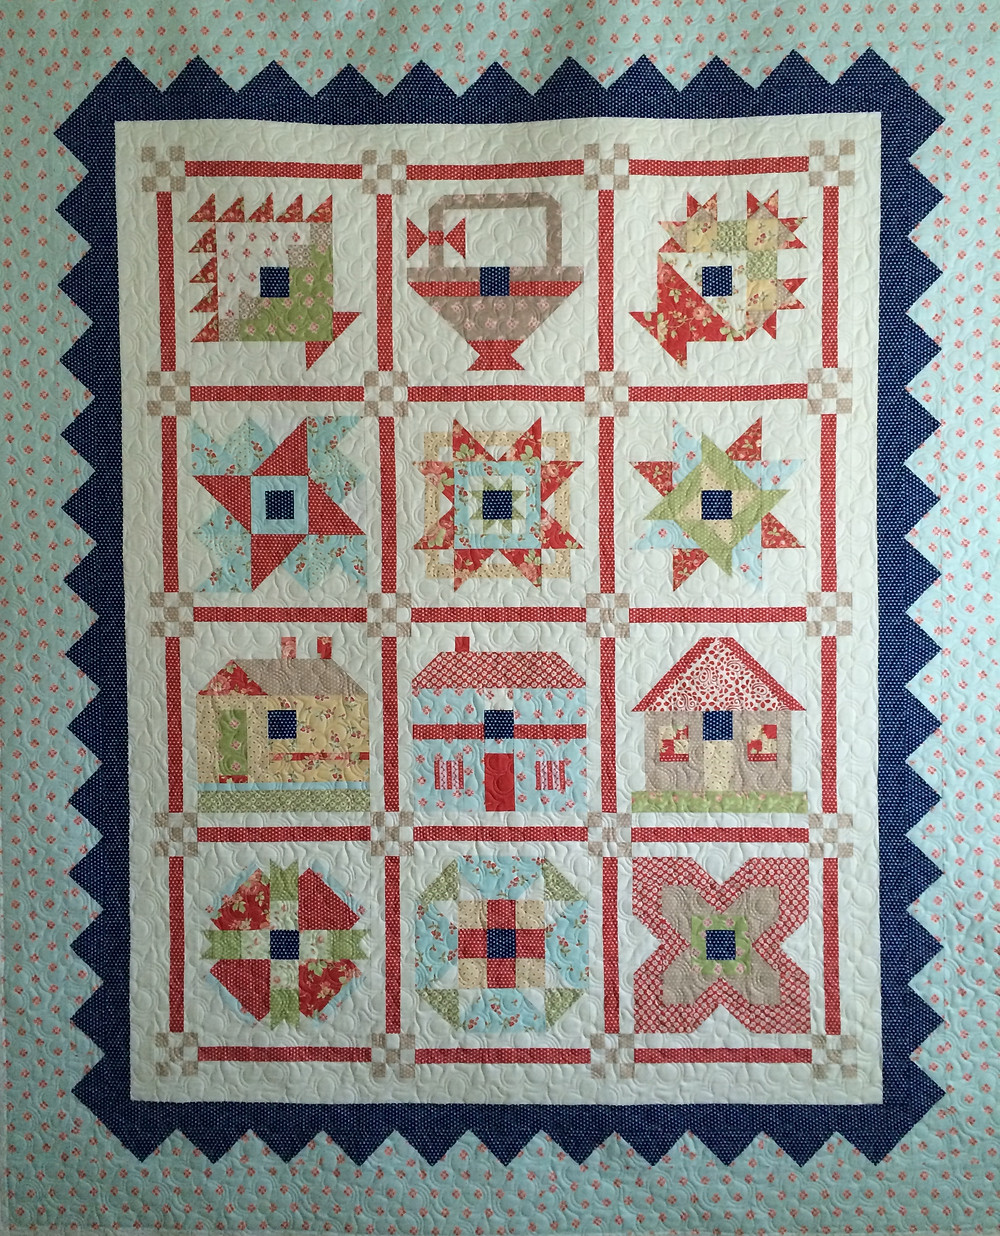 sampler quilt with nine patch cornerstones in shades of soft blue